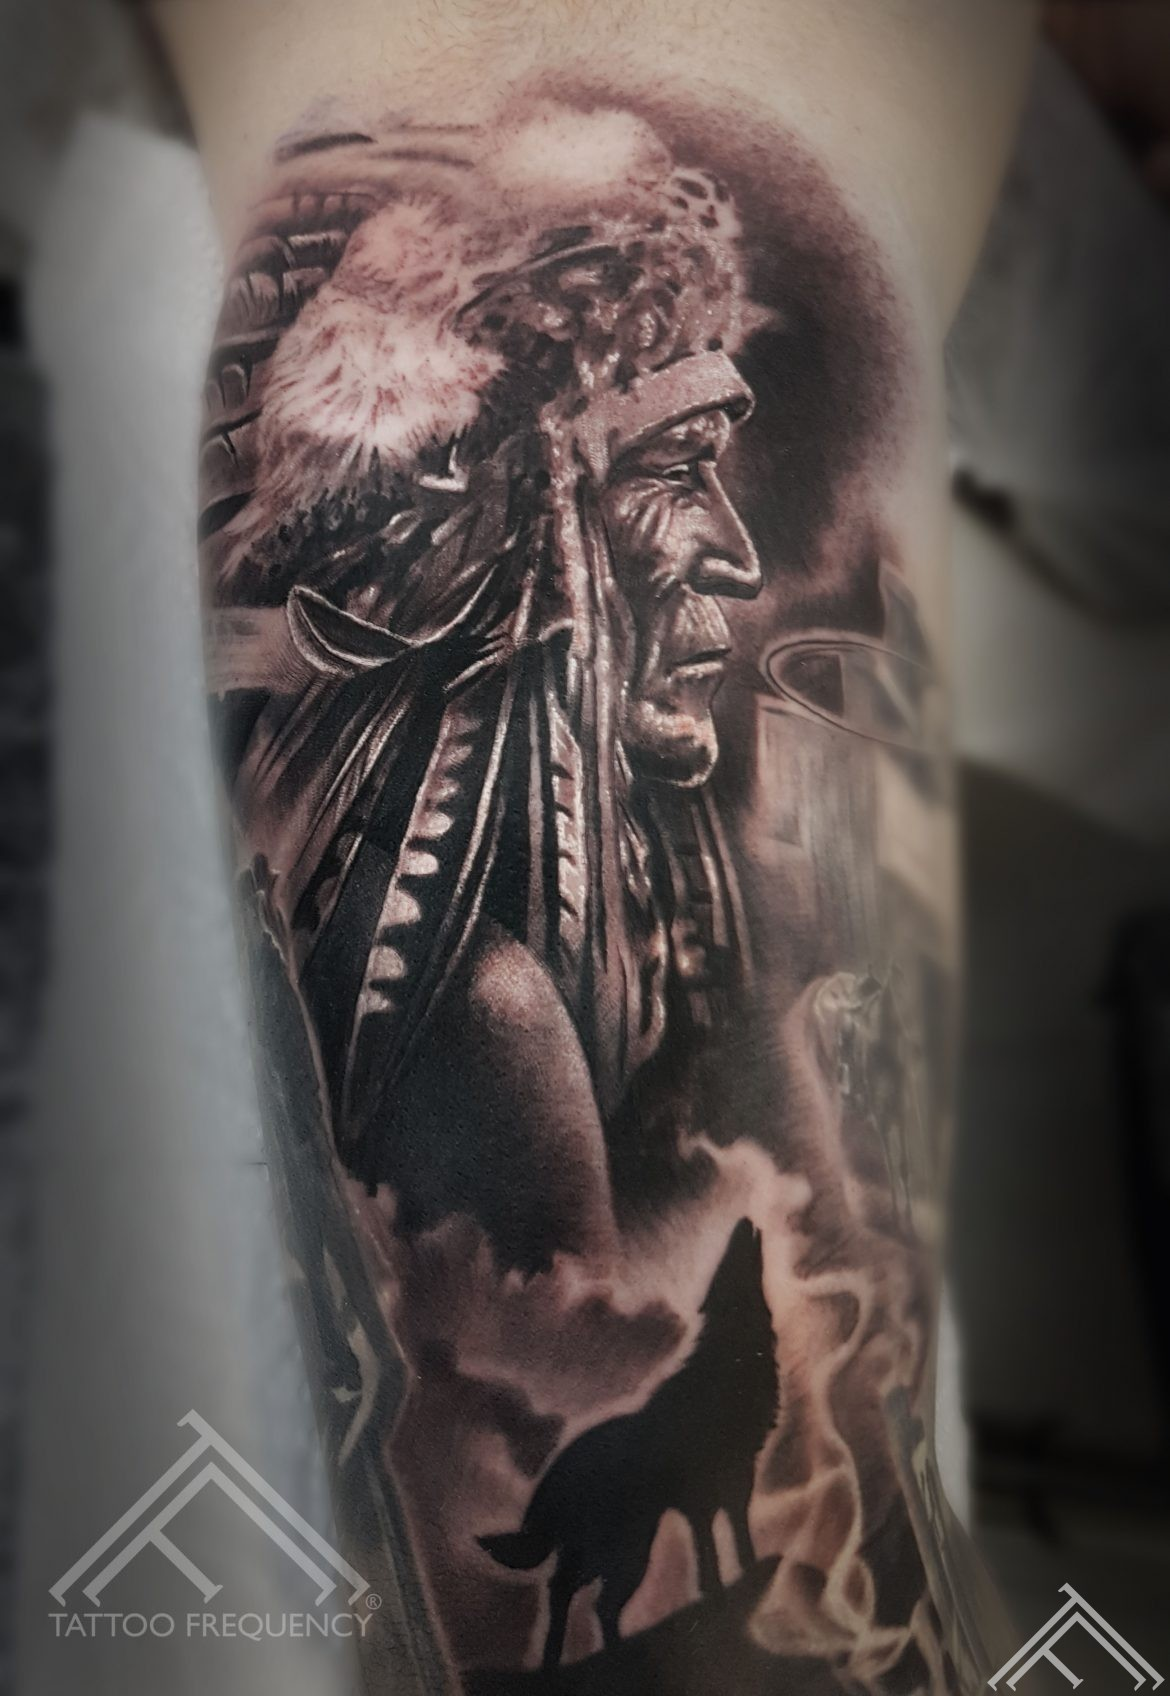 indian-tattoo-tattoofrequency-wolf-tetovejums-vilks-indianis